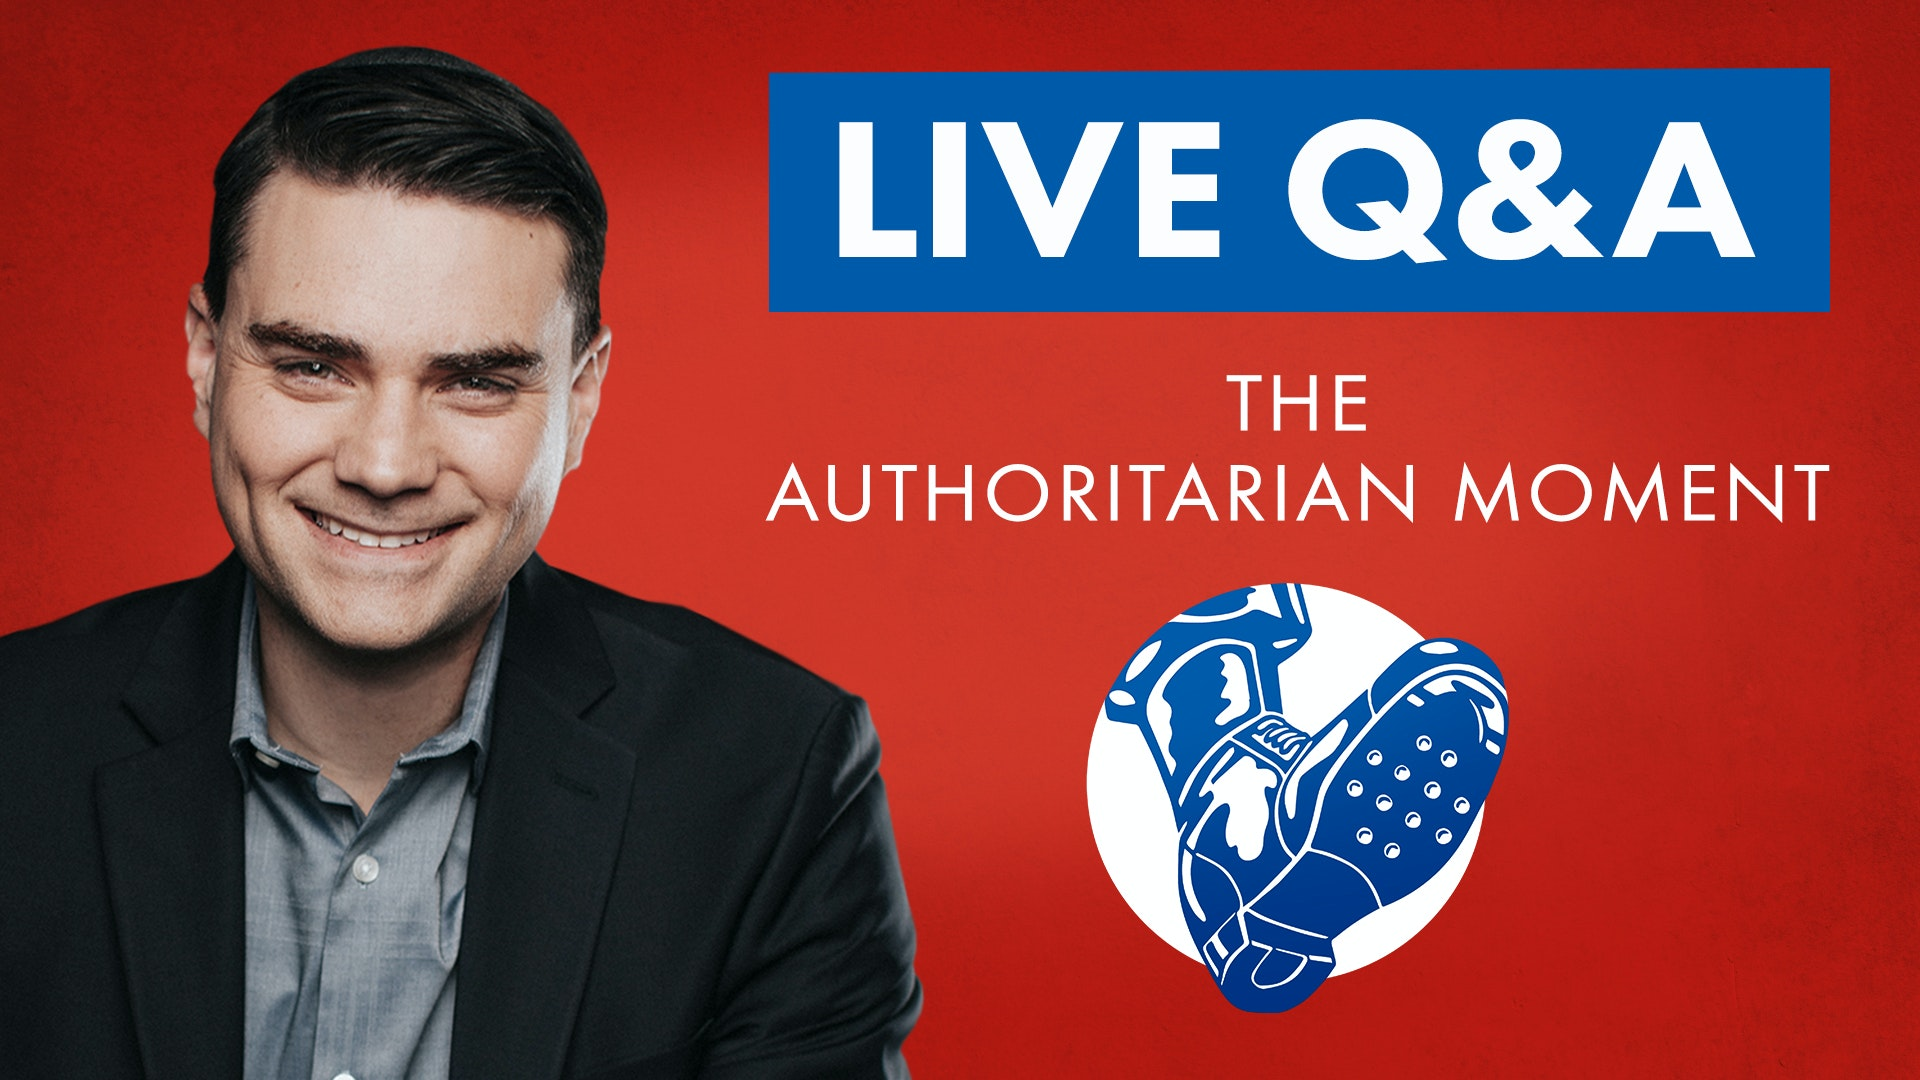 Ben Shapiro Book Signing Live Q & A | The Authoritarian Moment